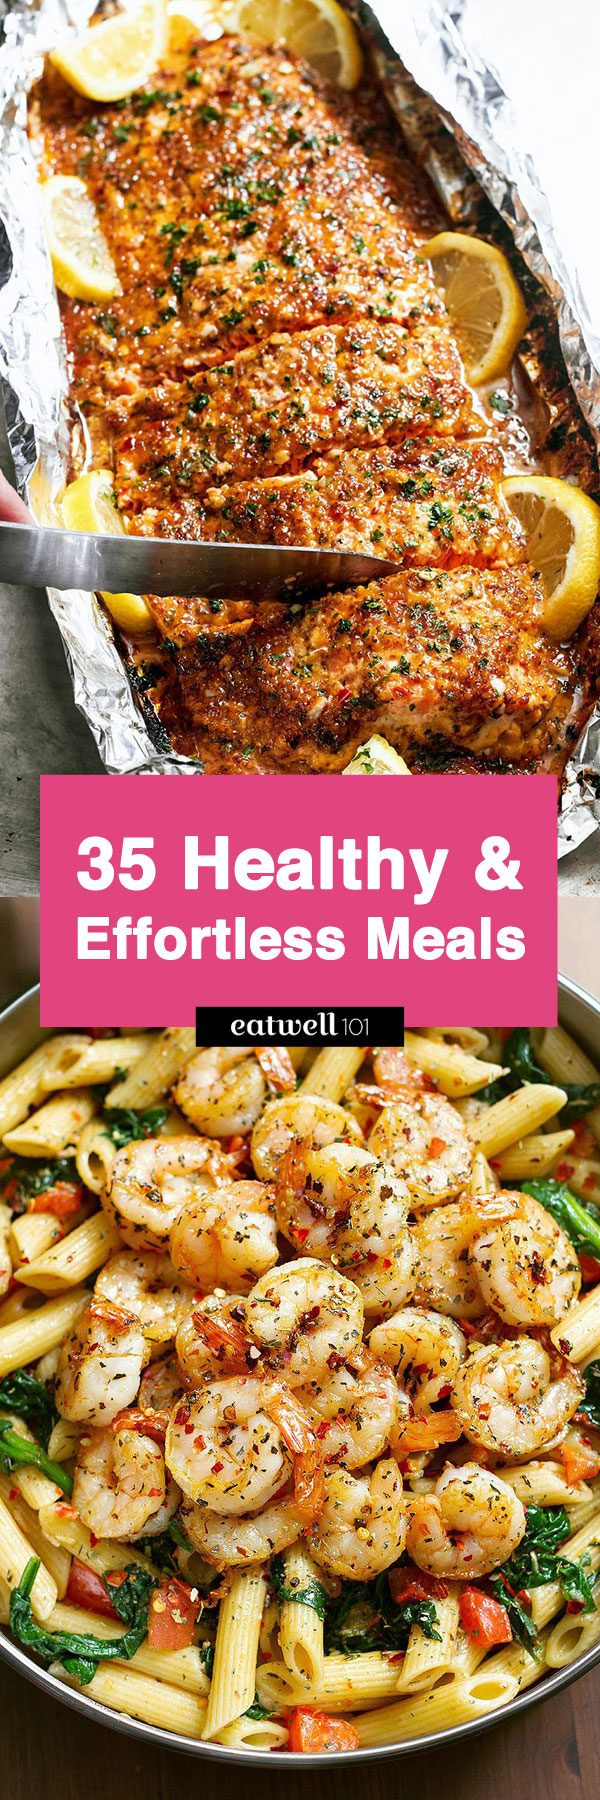 Easy Dinner Ideas Healthy  43 Low Effort and Healthy Dinner Recipes — Eatwell101